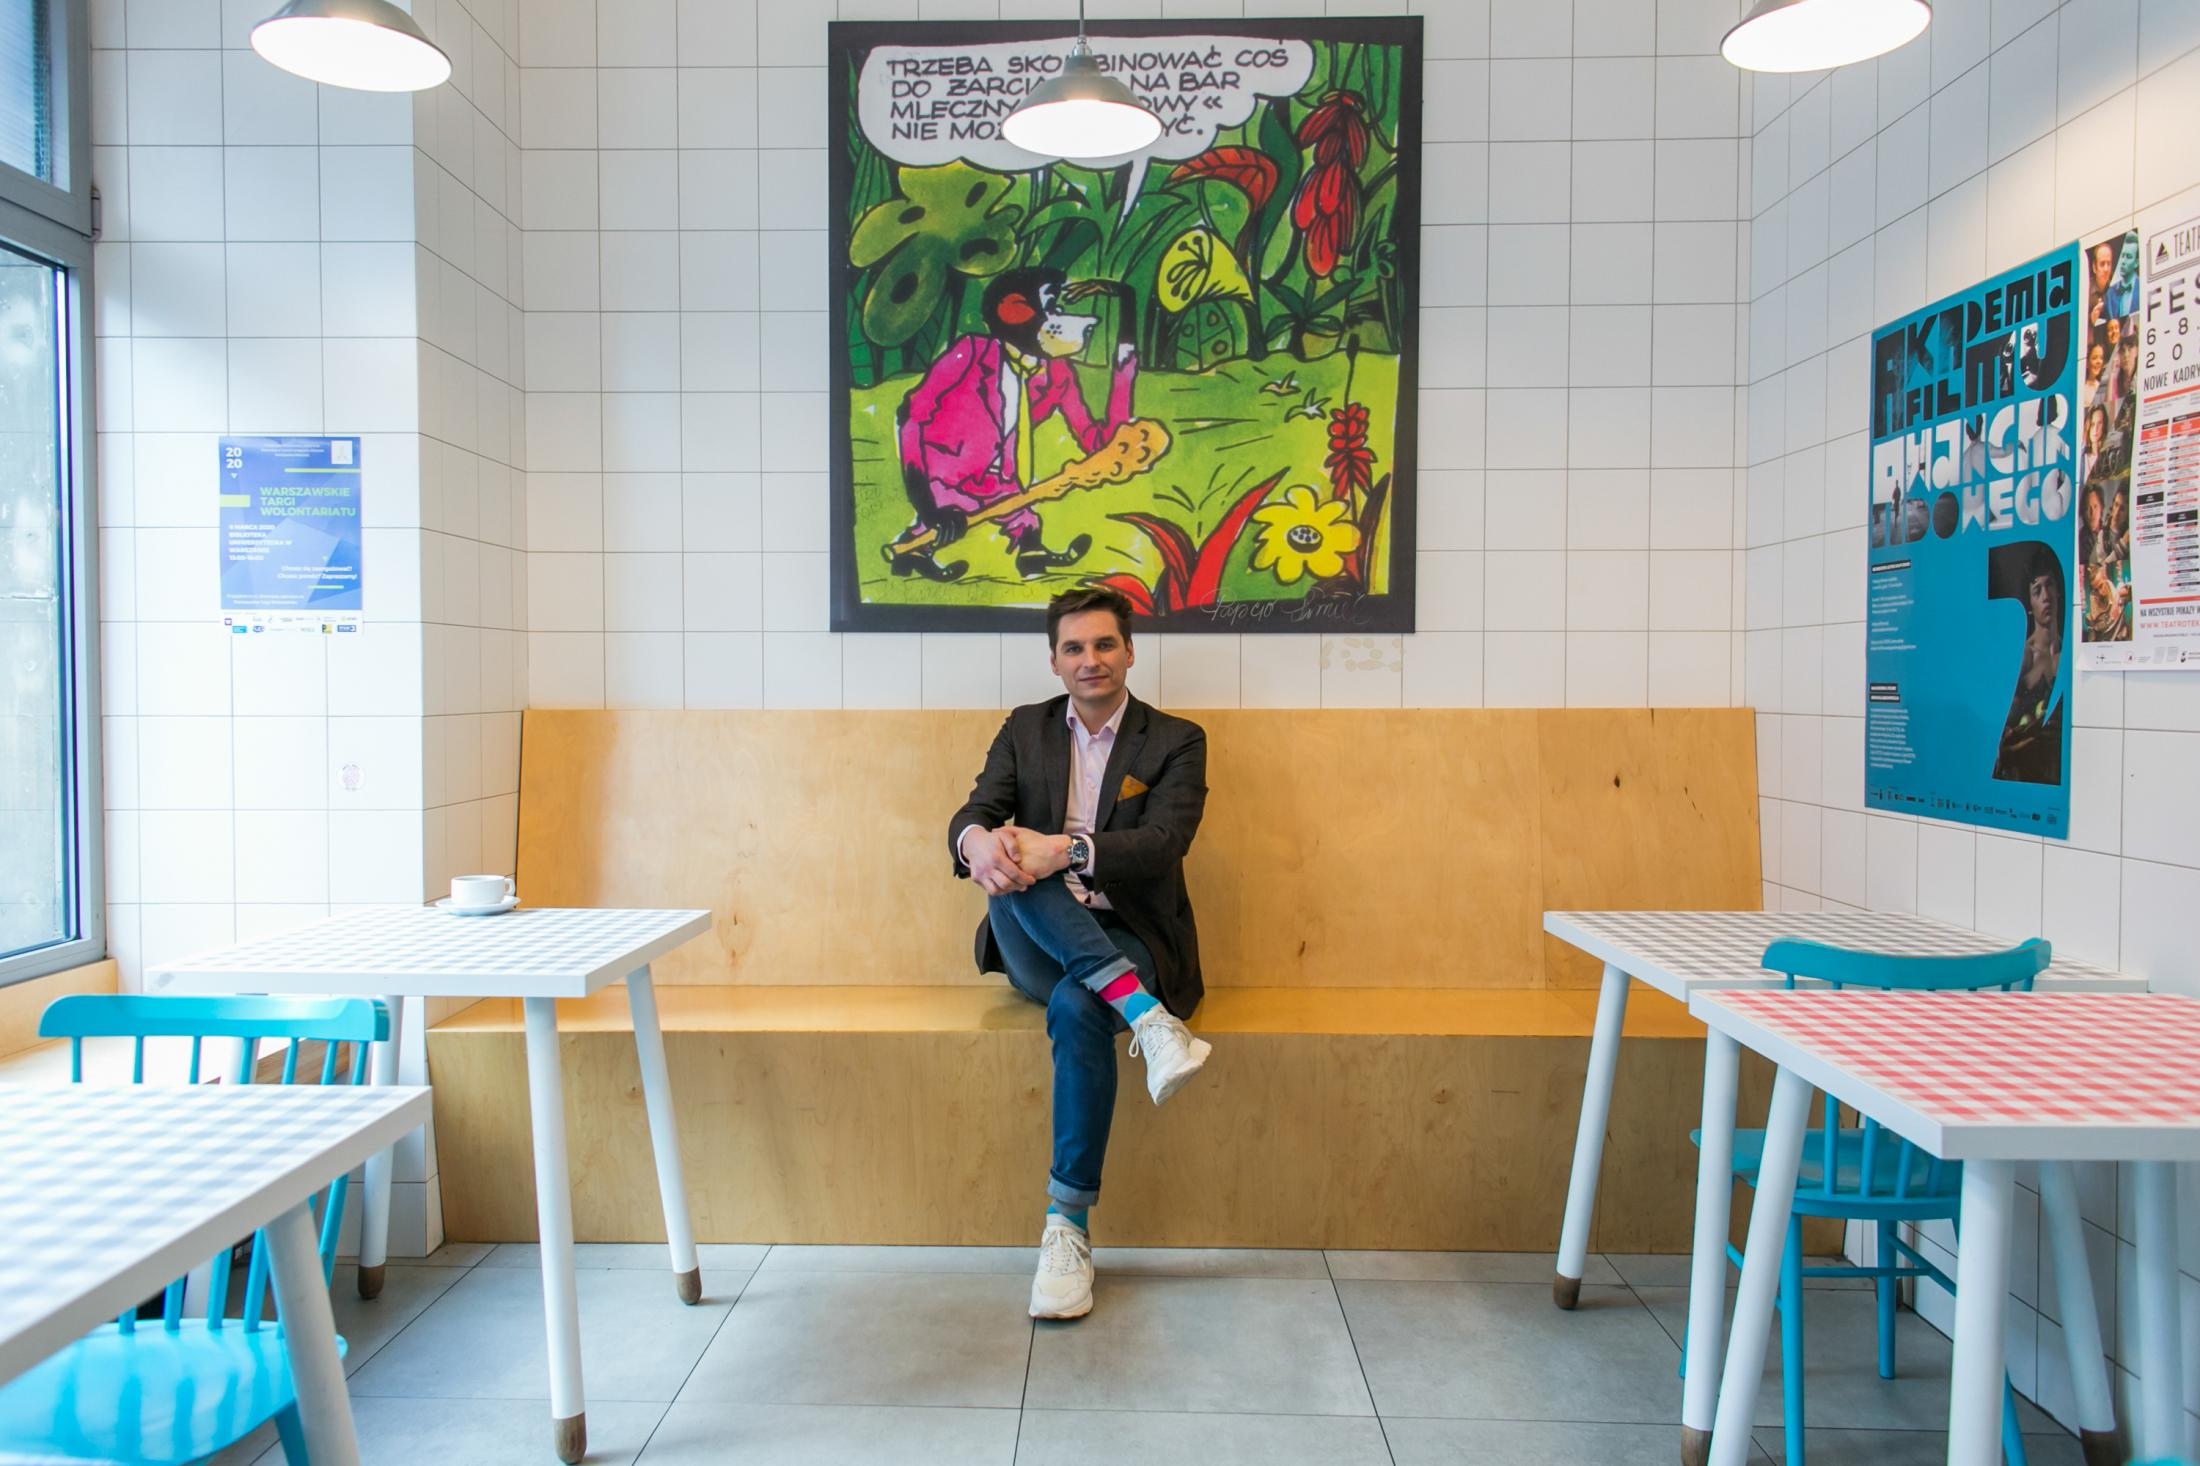 Kamil Hagemajer- owner of the Milk Bar Prasowy in Warsaw. Portrait for The New York Times